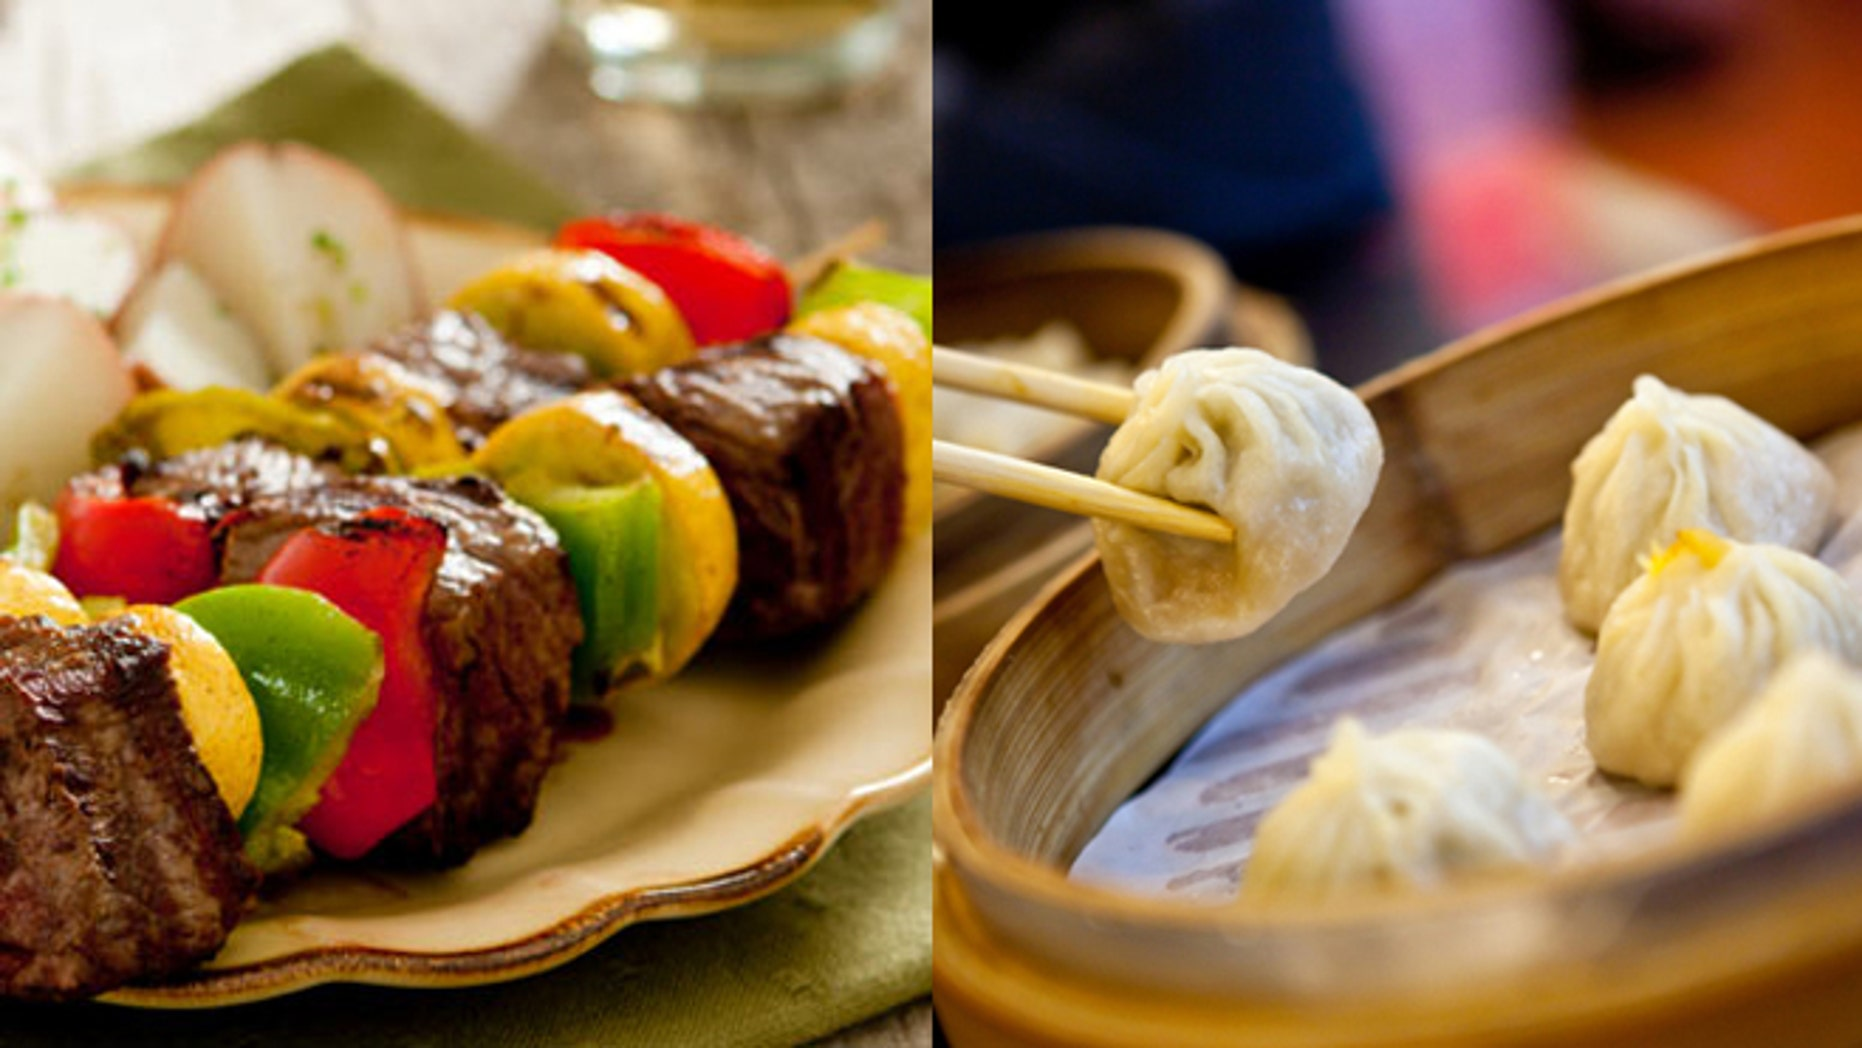 Turkish food in Berlin? Chinese food in Vancouver? You might be surprised.